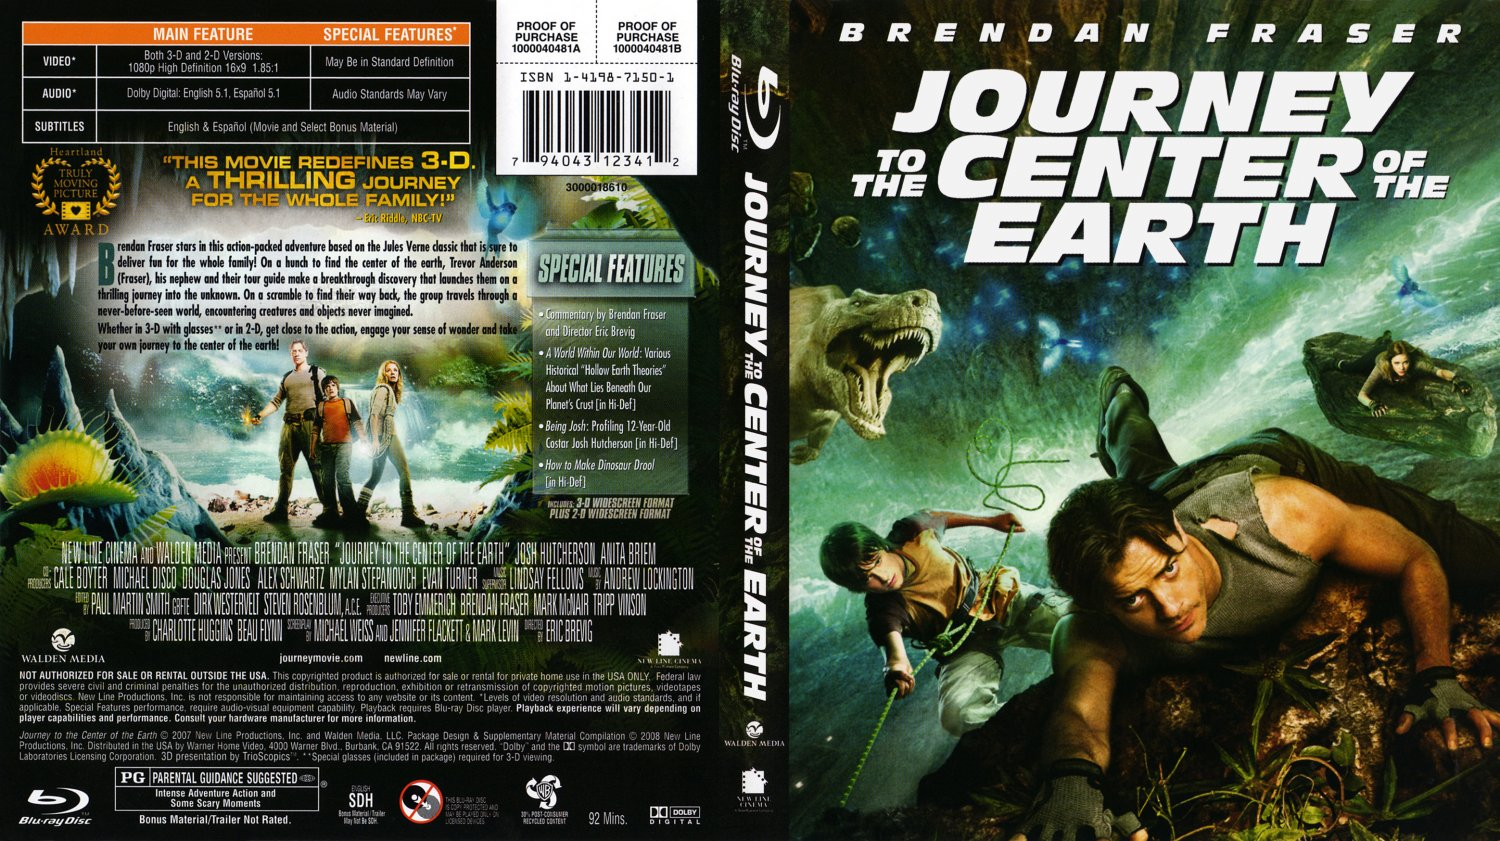 Journey To The Center Of The Earth 2008 Wallpapers Movie Hq Journey To The Center Of The Earth 2008 Pictures 4k Wallpapers 2019